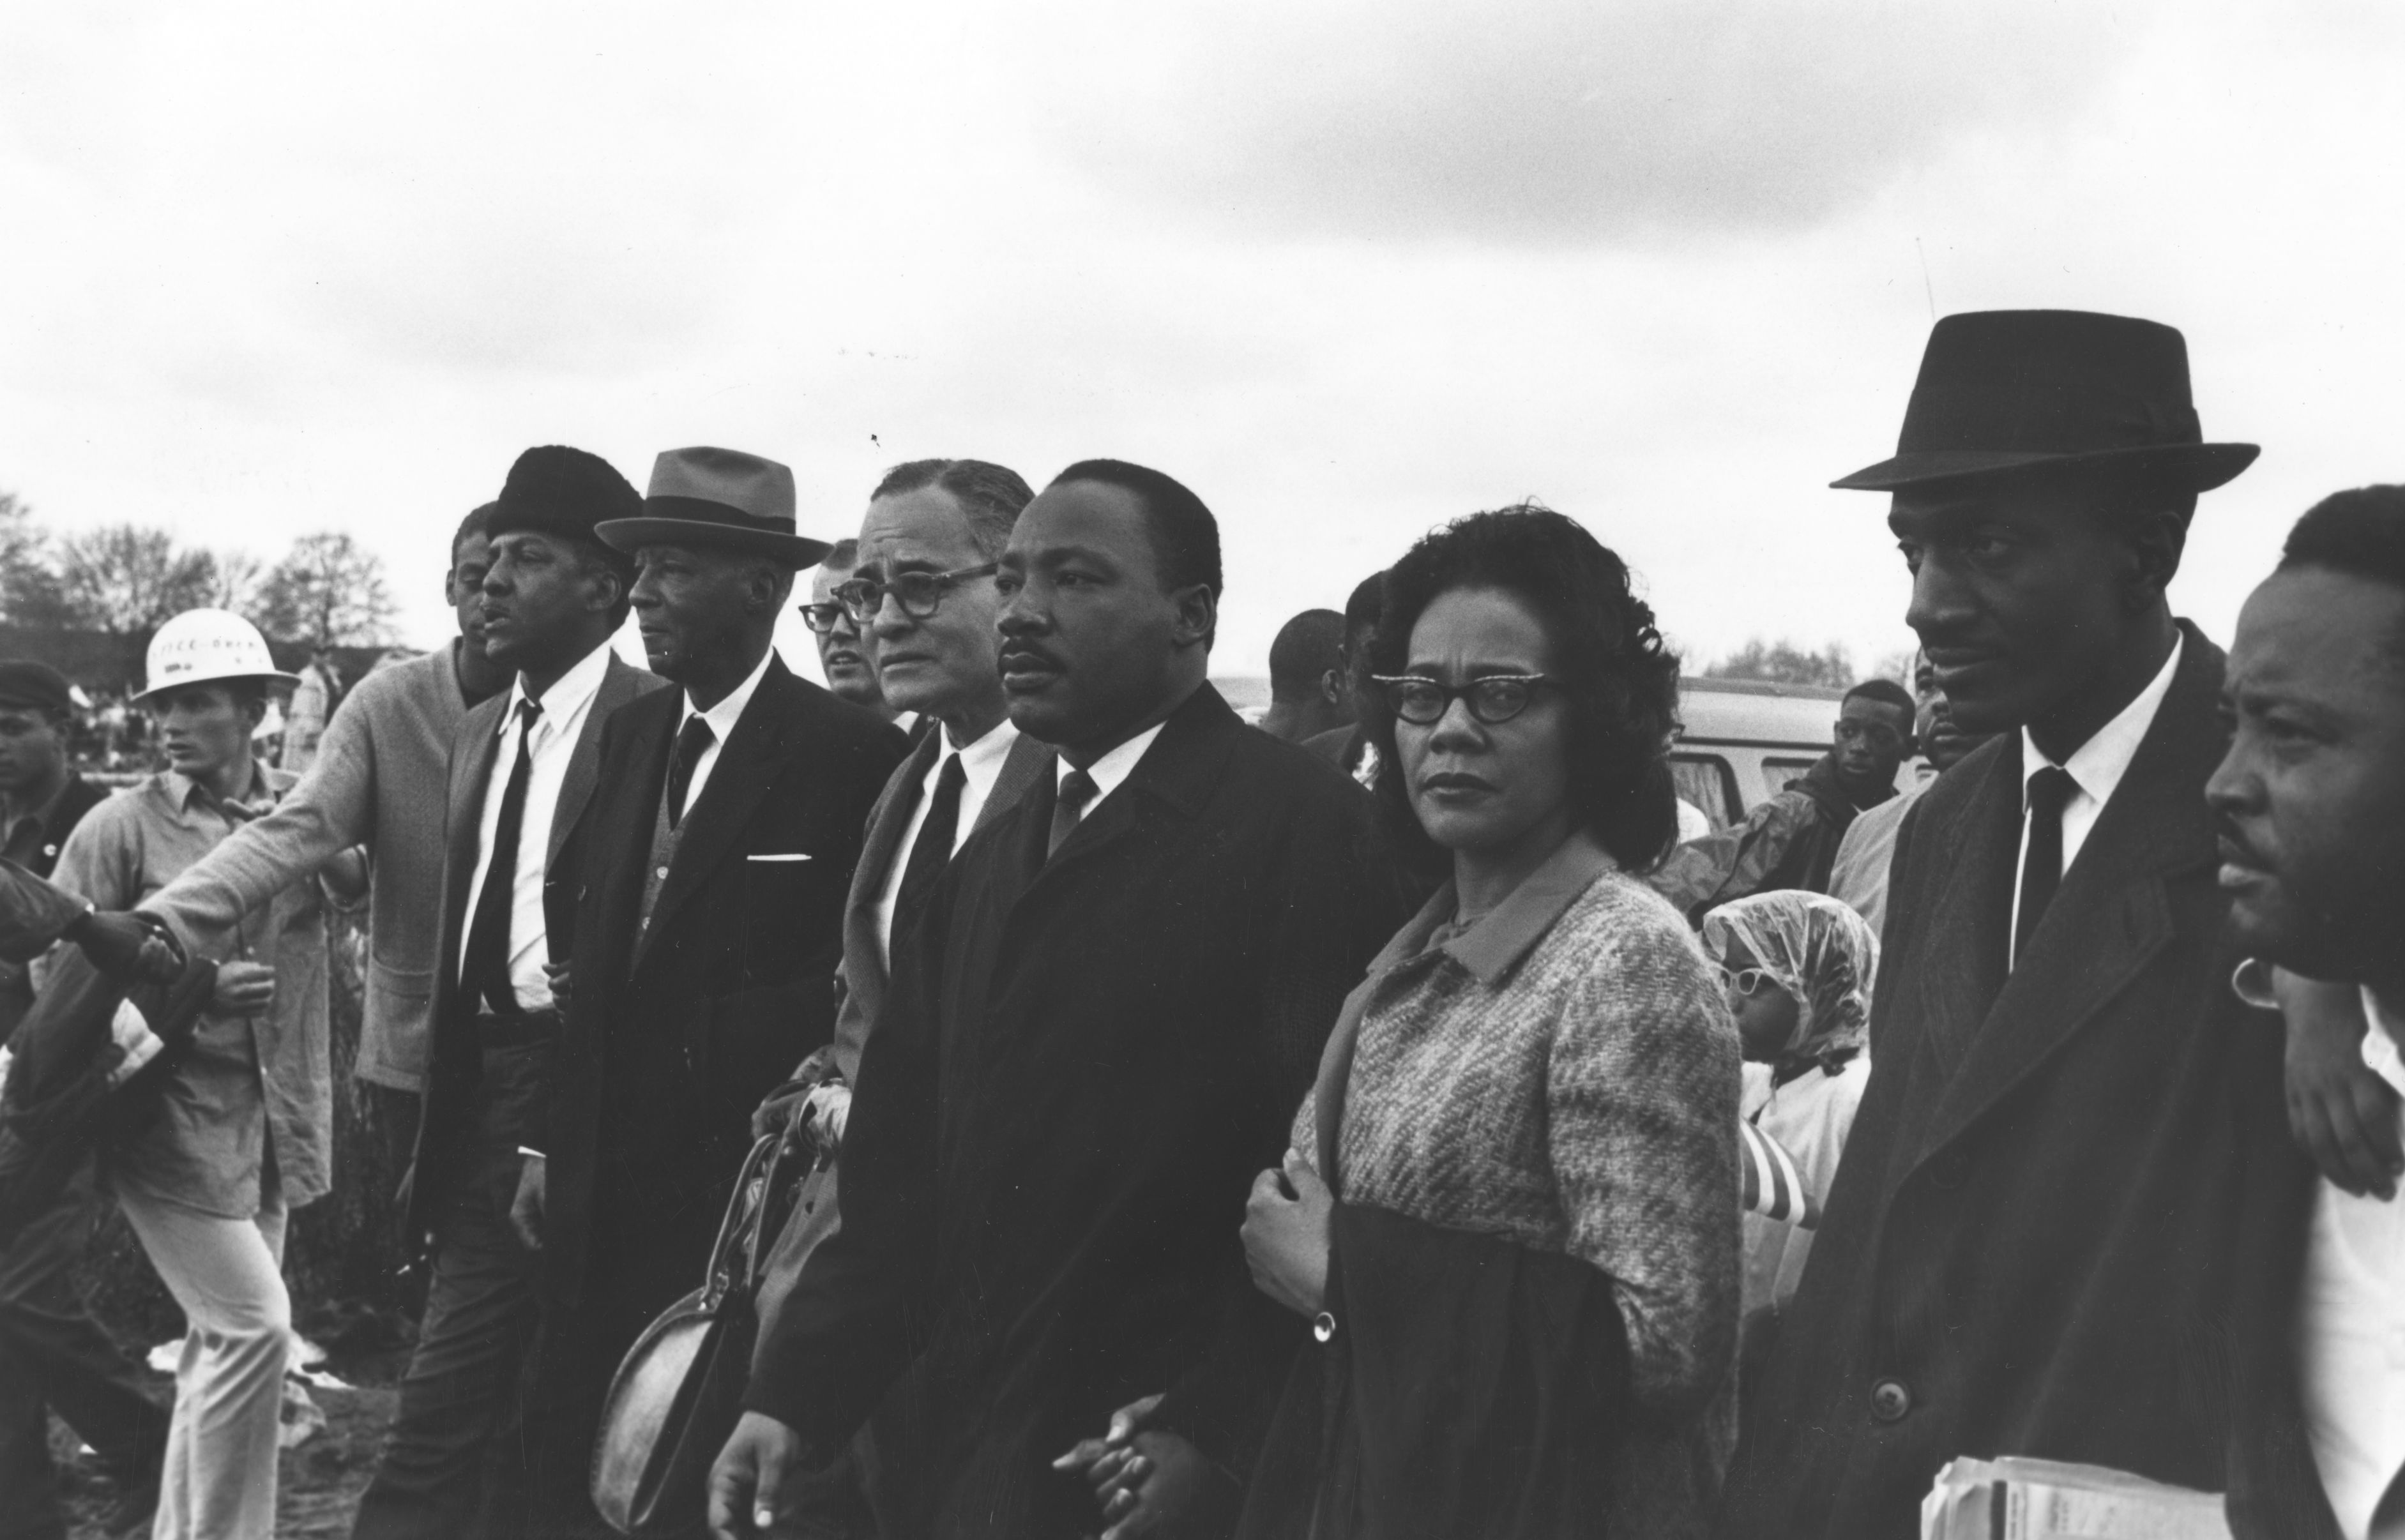 Film and documentary on Martin Luther King's murder mystery in the works